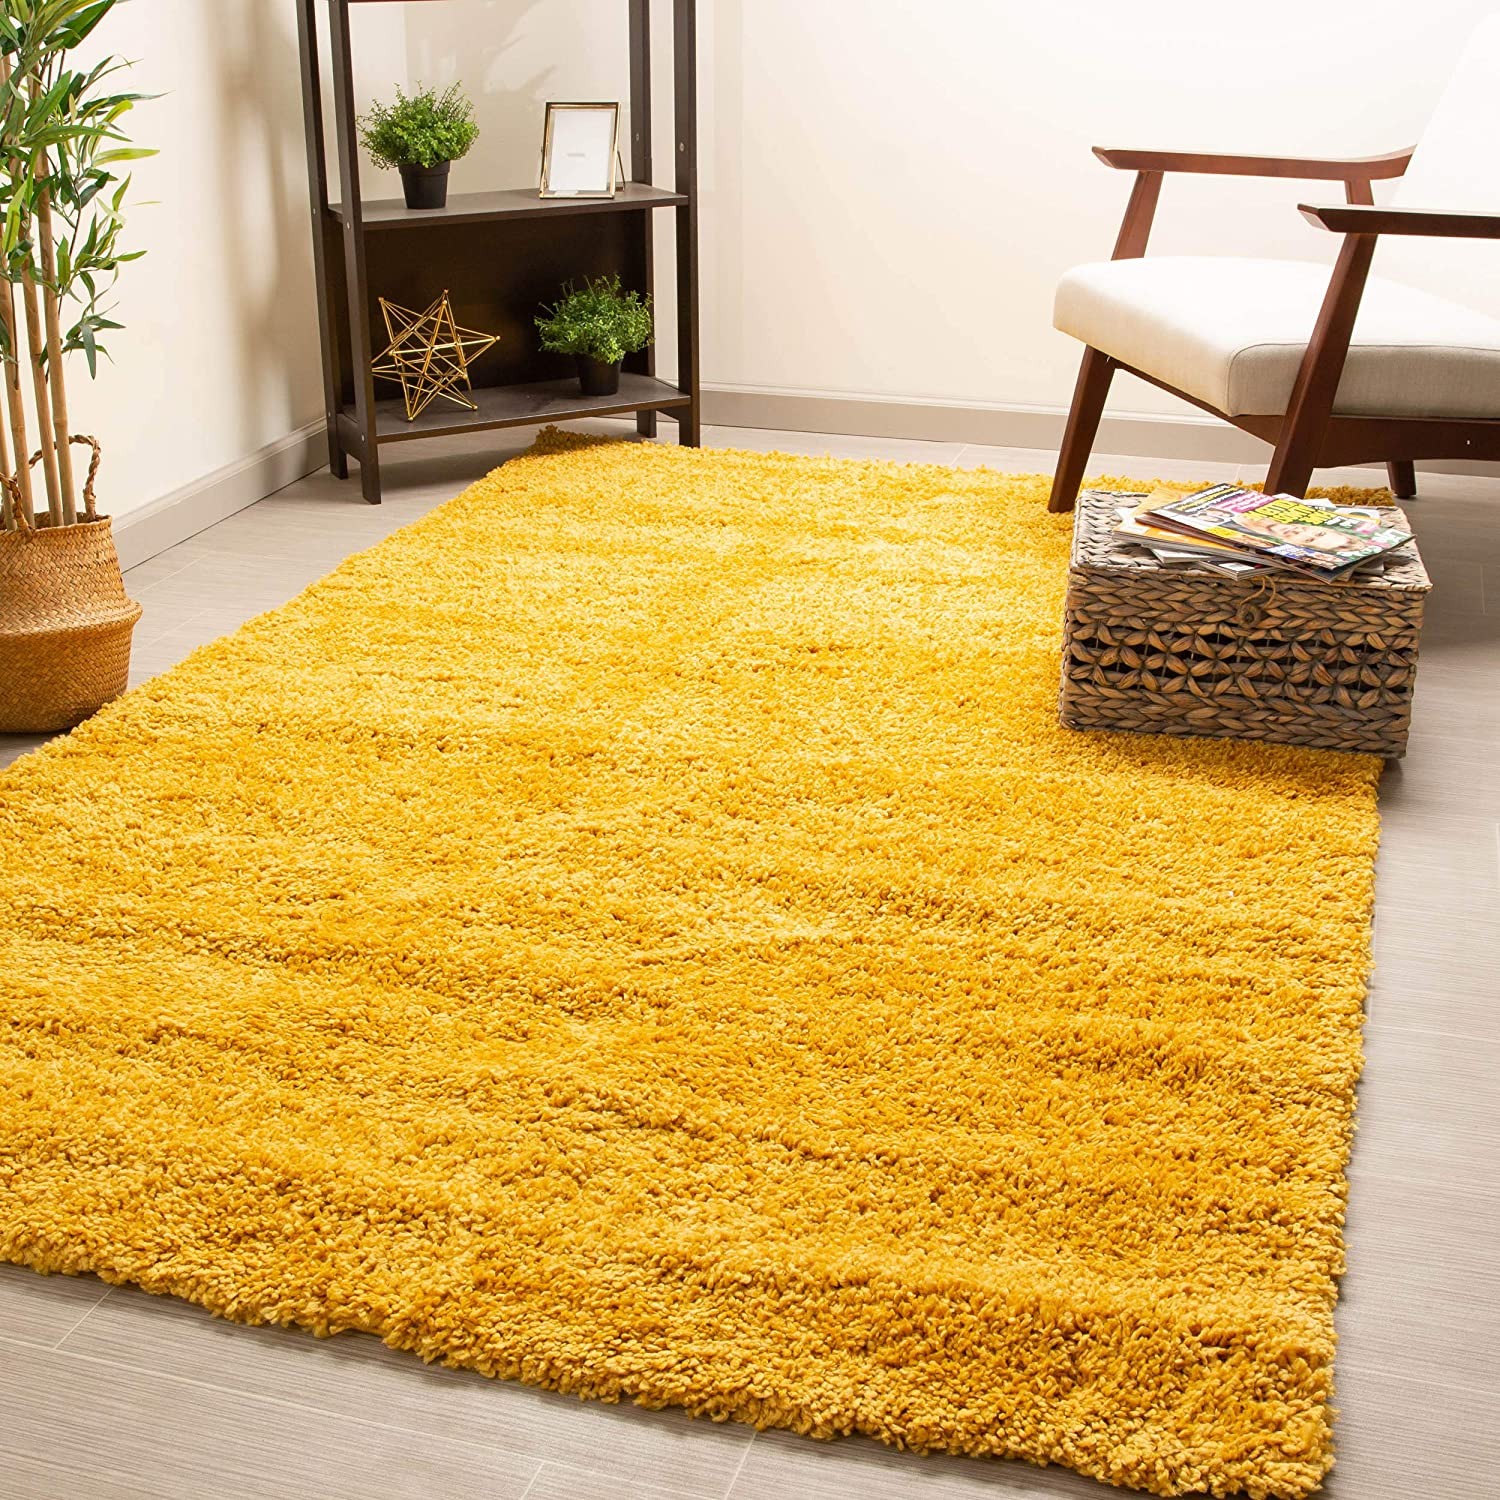 Super Area Rugs Fluffy Soft Fiber Shag Rug Perfect For Living Rooms Dining Rooms And Home Decor Yellow 3 3 X 5 3 Rectangle Furniture Decor